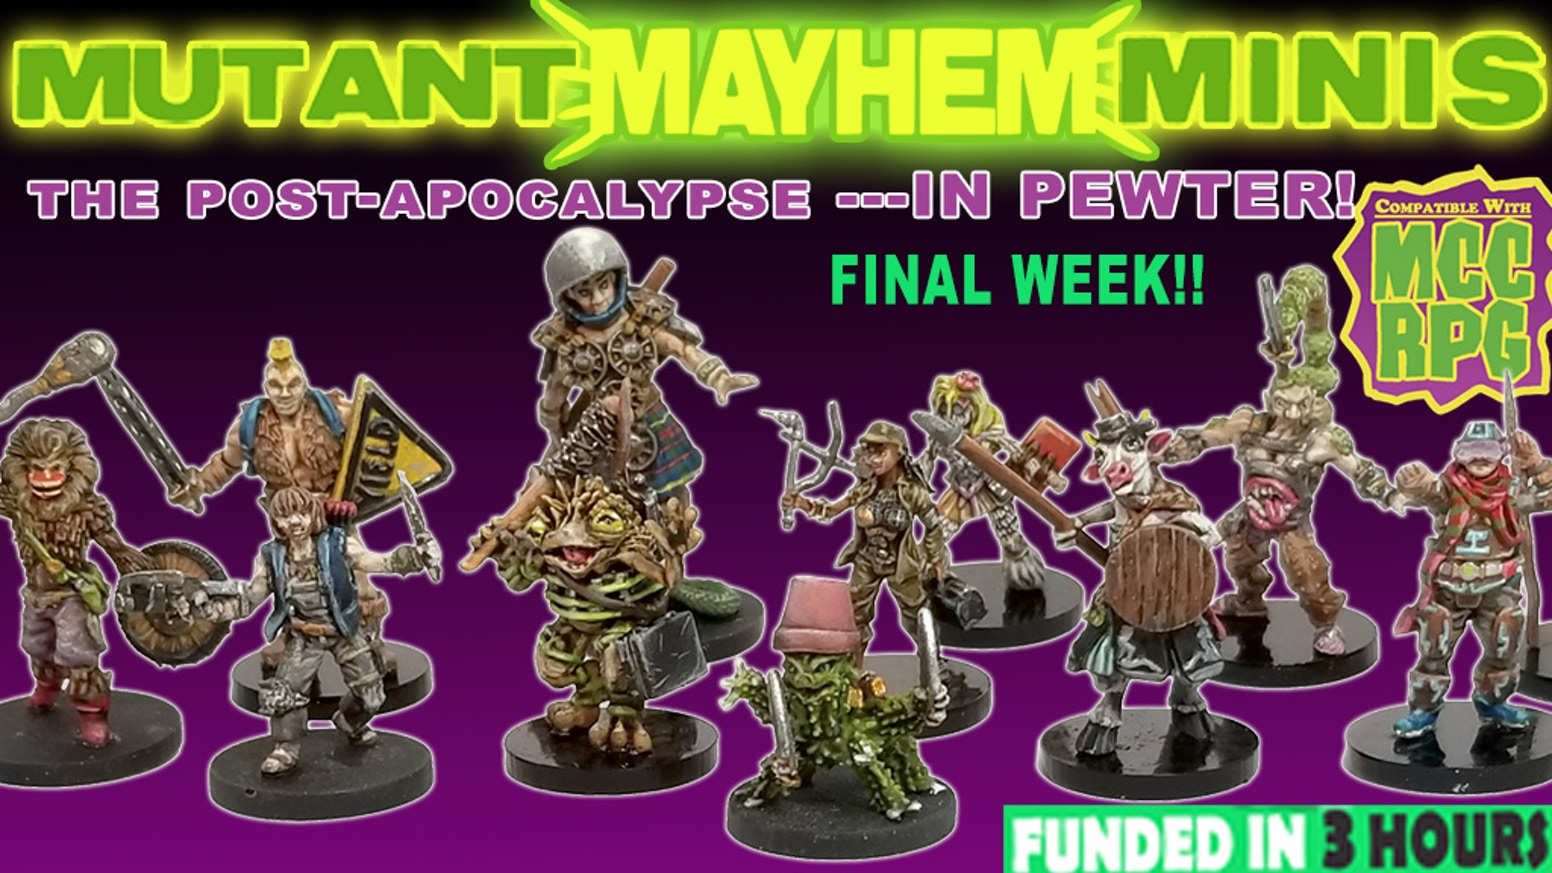 A line of high-quality pewter figures featuring characters and monsters with post-apocalyptic flavor.Minis are now available at the Goodman Games webstore. http://goodman-games.com/blog/2019/03/27/new-in-the-online-store-mutant-mayhem-miniatures/